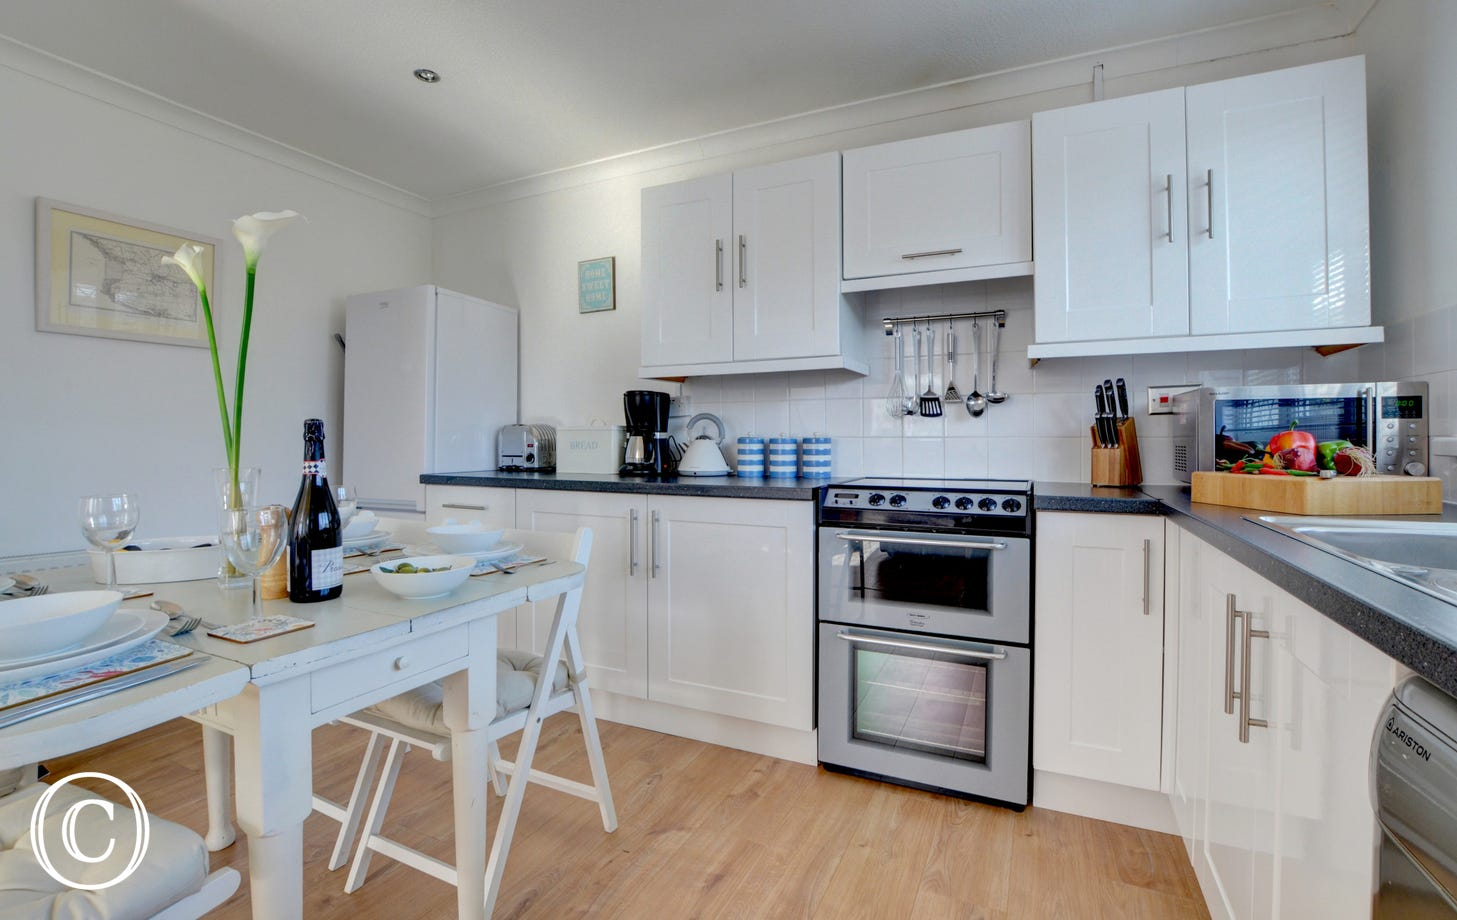 The kitchen is well equipped and will have everything you need for your stay